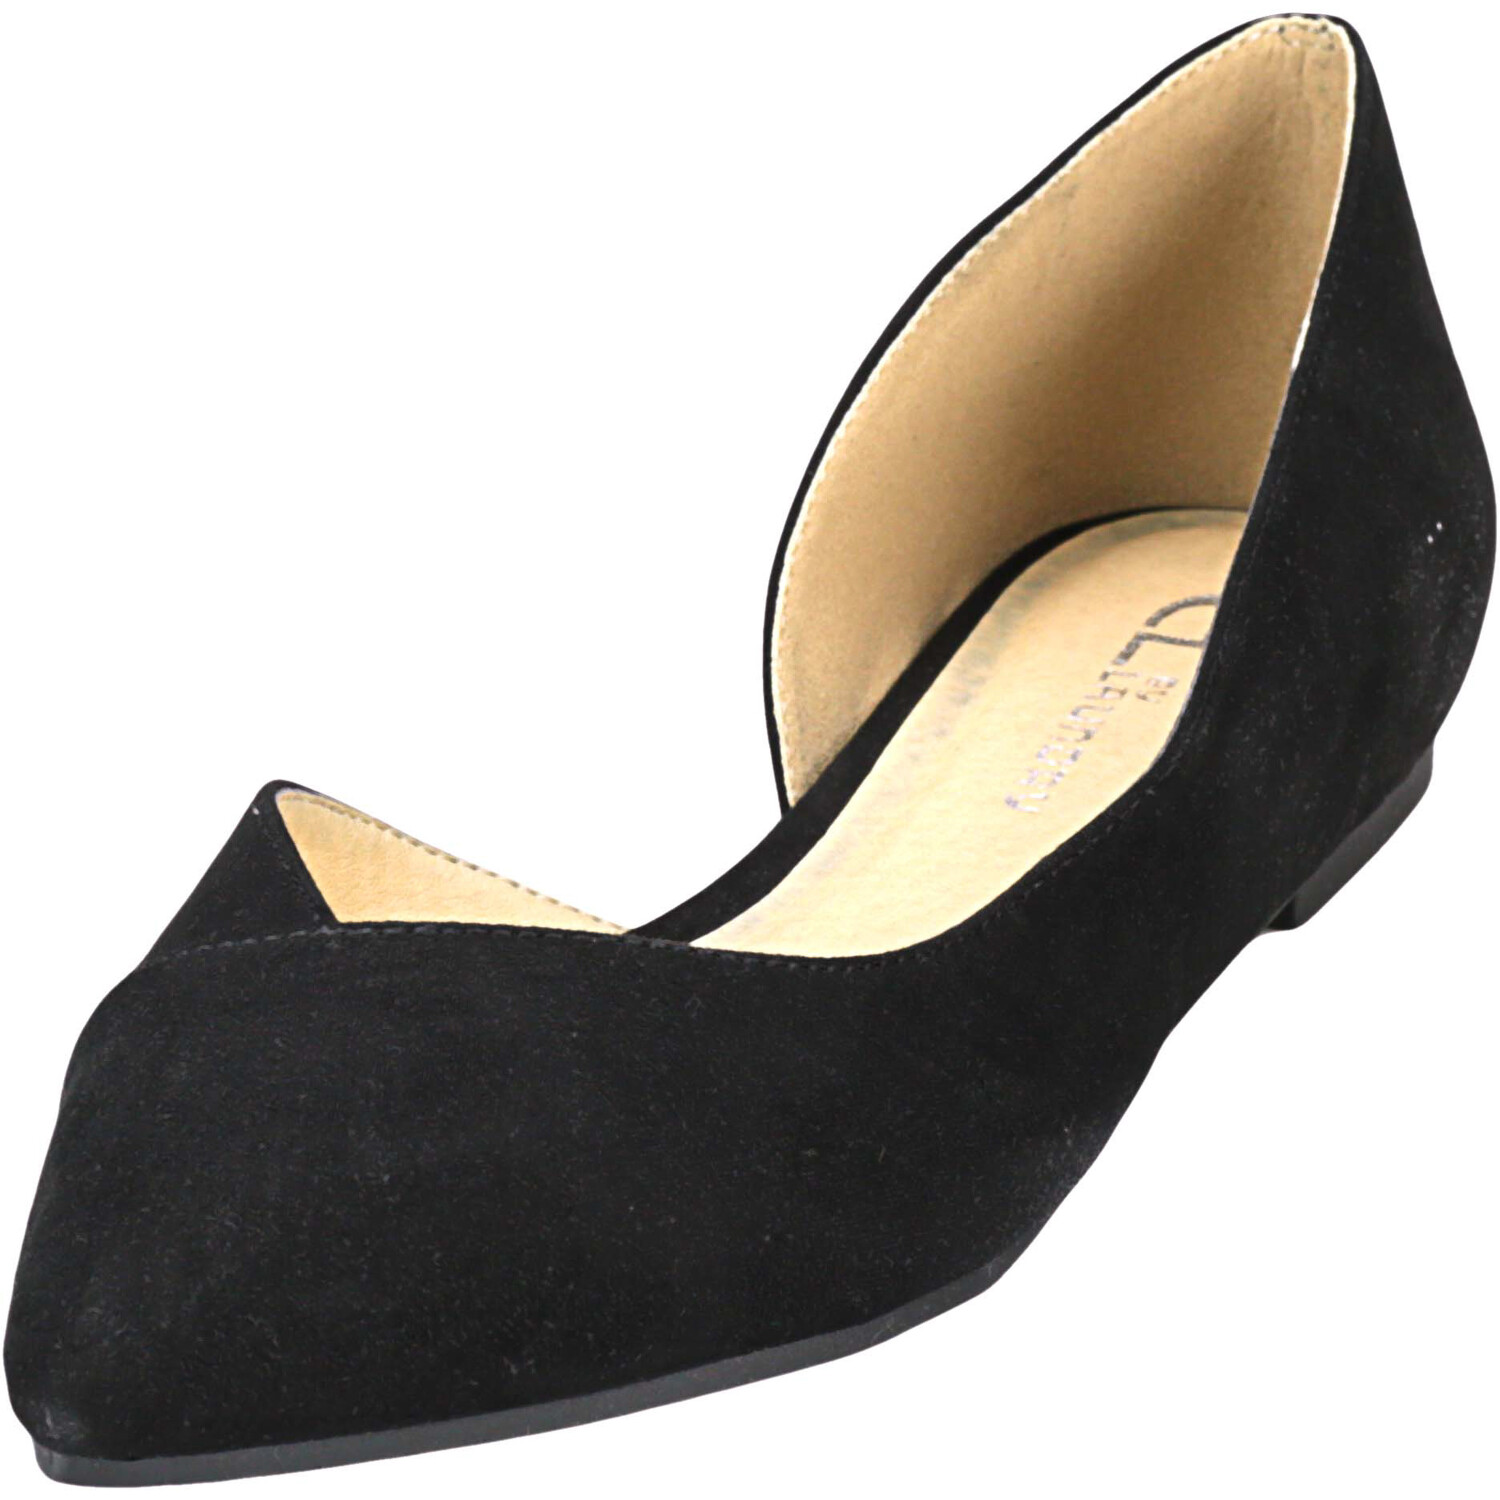 Chinese Laundry Women's Hiromi Suede Black Ankle-High Fabric Flat Shoe - 7M